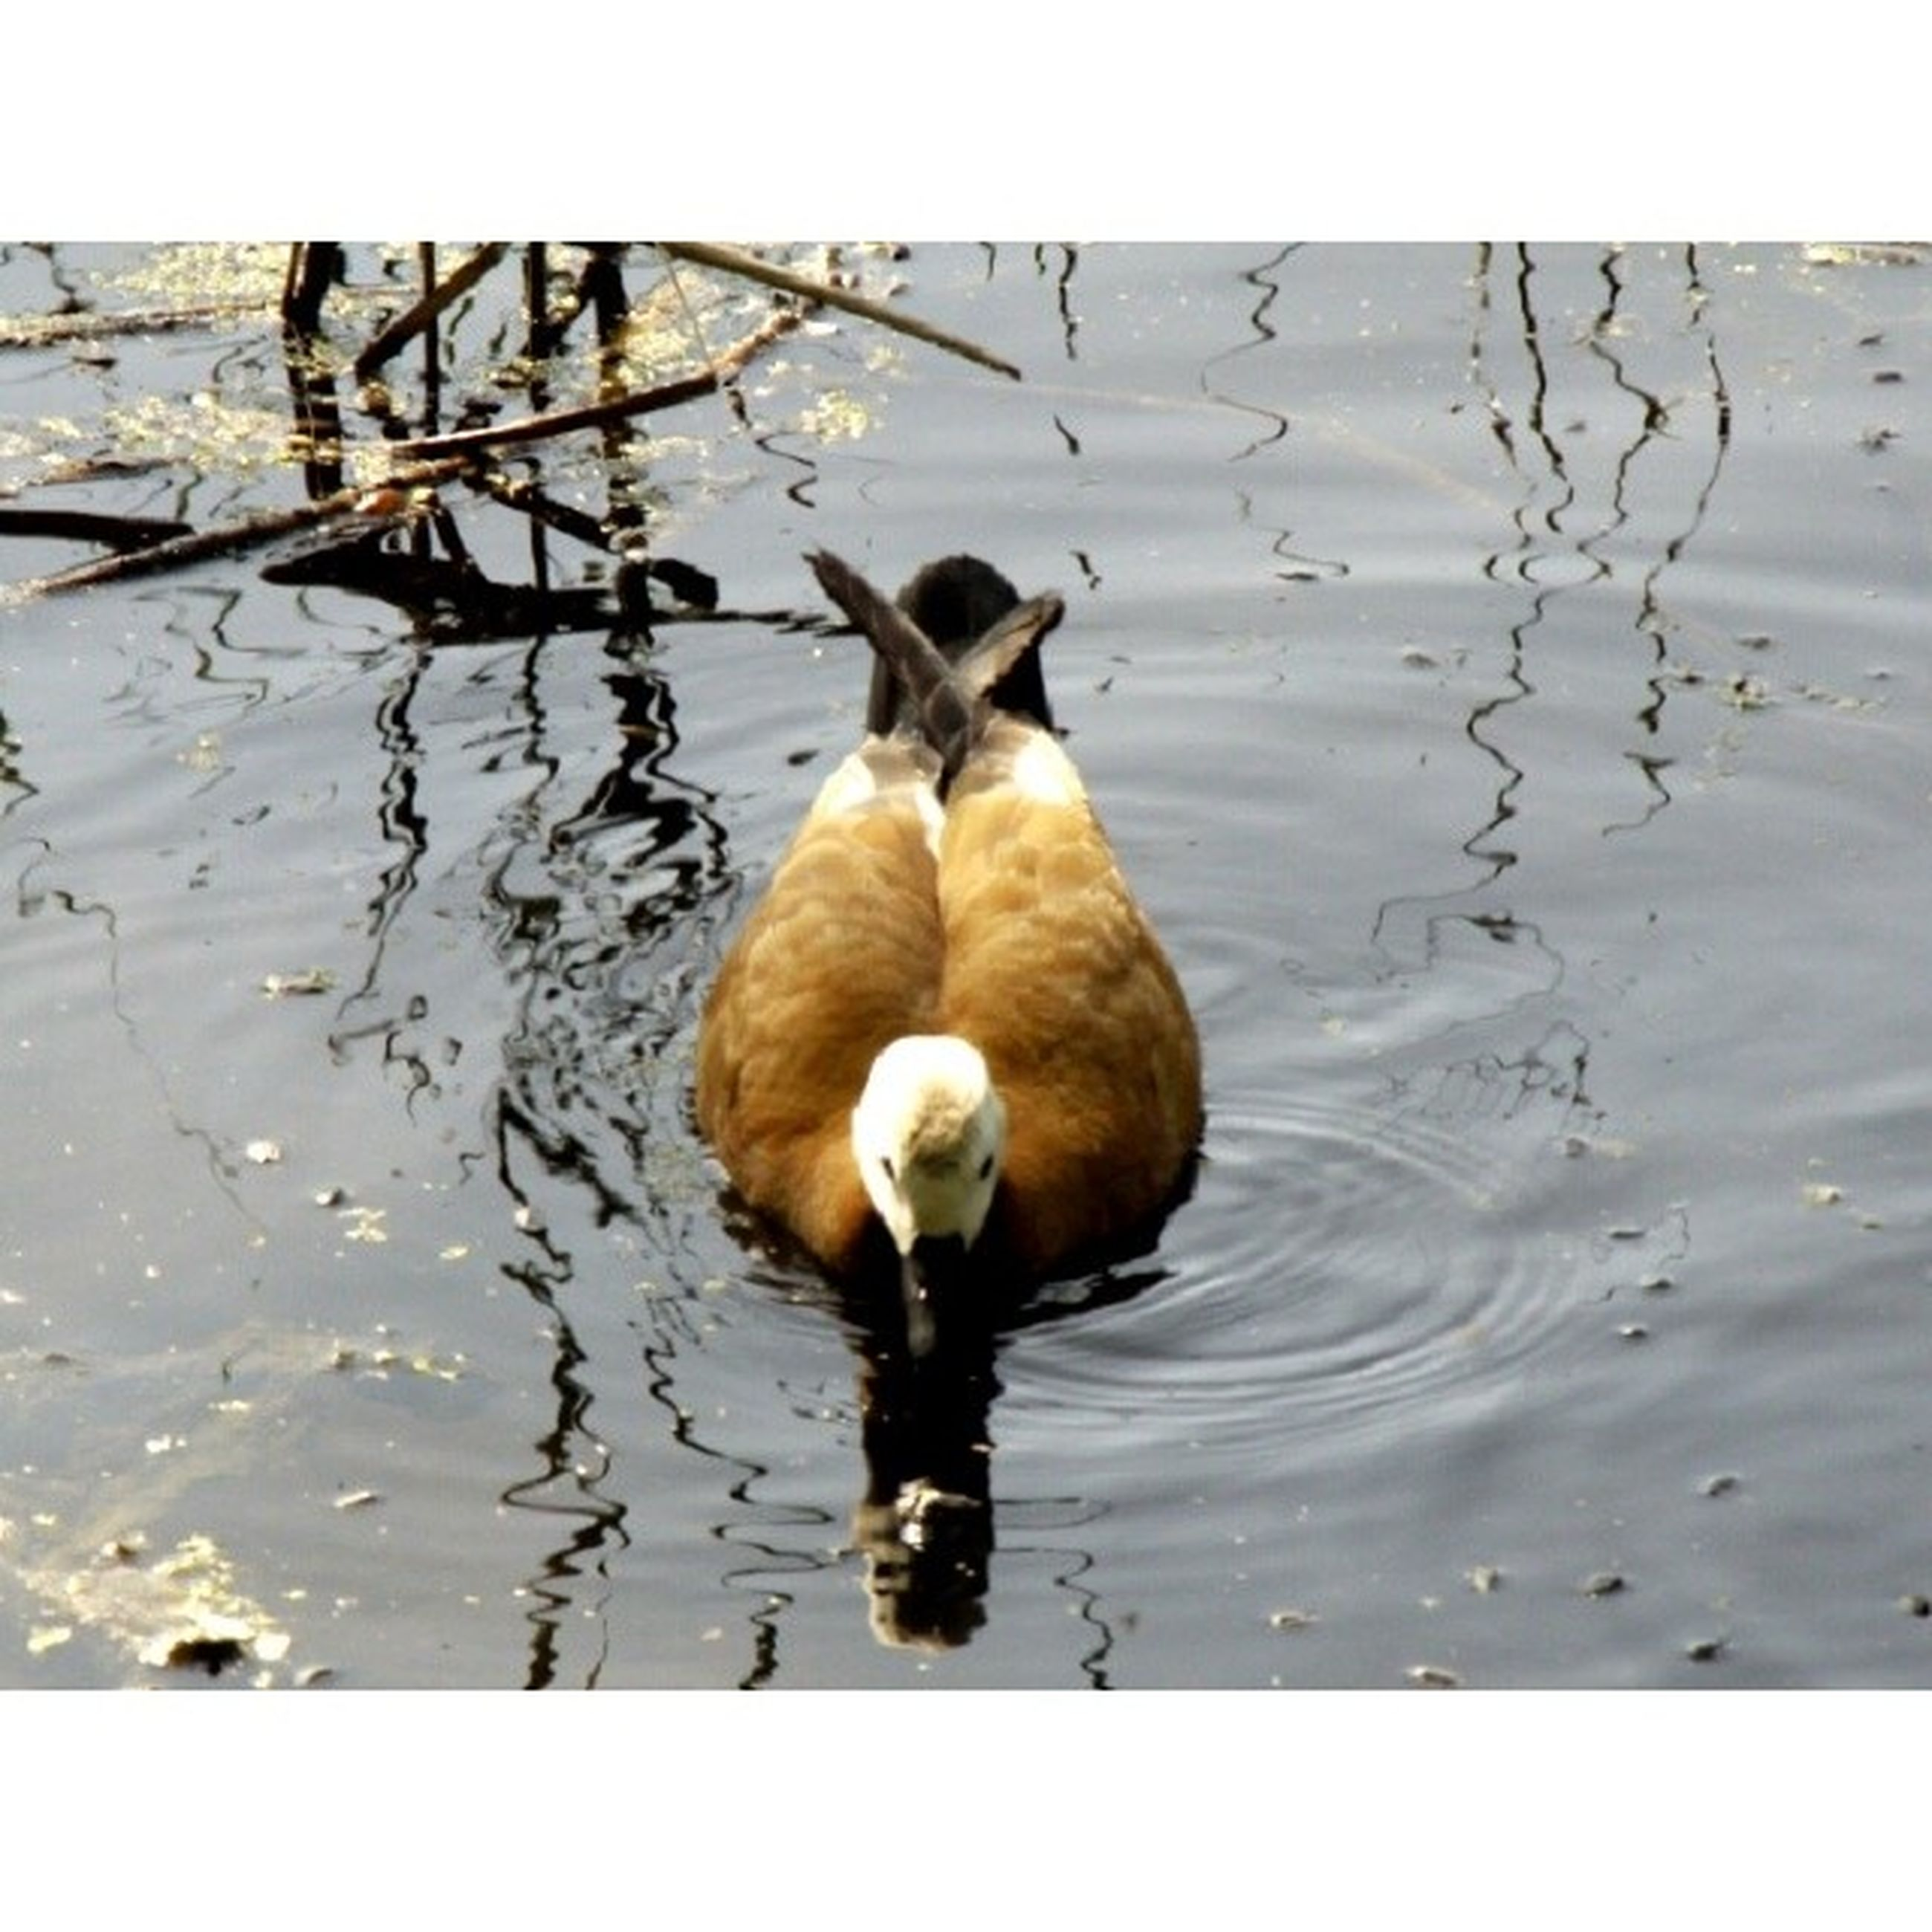 animal themes, water, animals in the wild, lake, wildlife, bird, one animal, reflection, duck, high angle view, swimming, nature, full length, waterfront, water bird, young animal, rippled, two animals, day, zoology